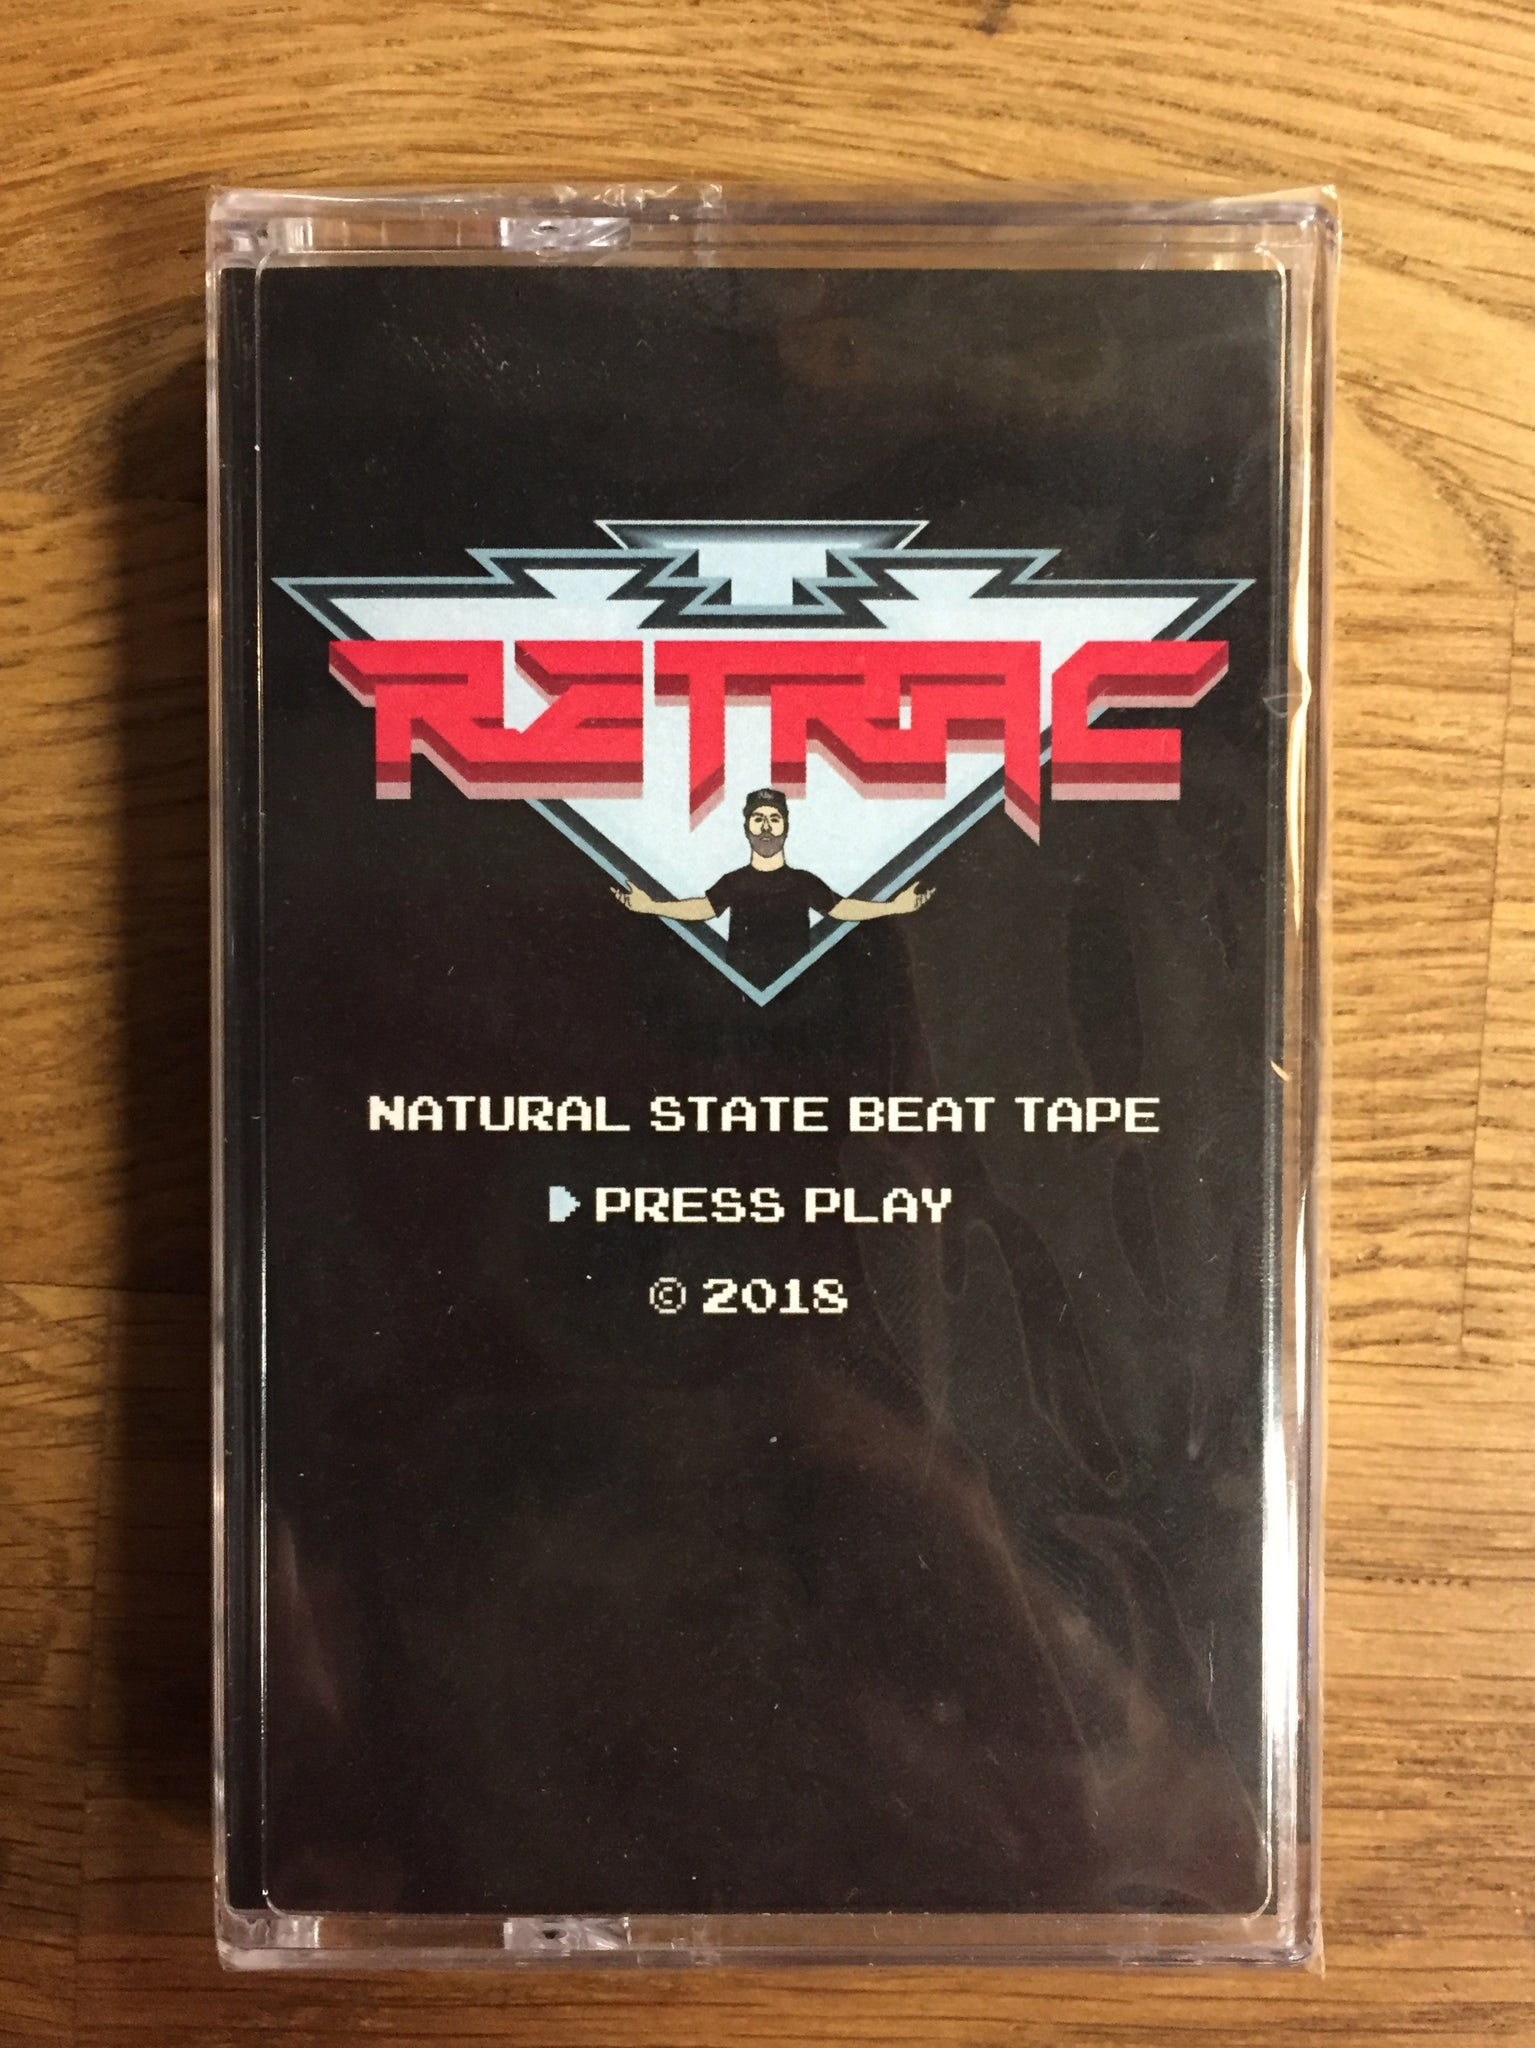 Retrac - Natural State Beat Tape - New Cassette 2018 illEKTRIK Tape - Chicago, IL Hip Hop